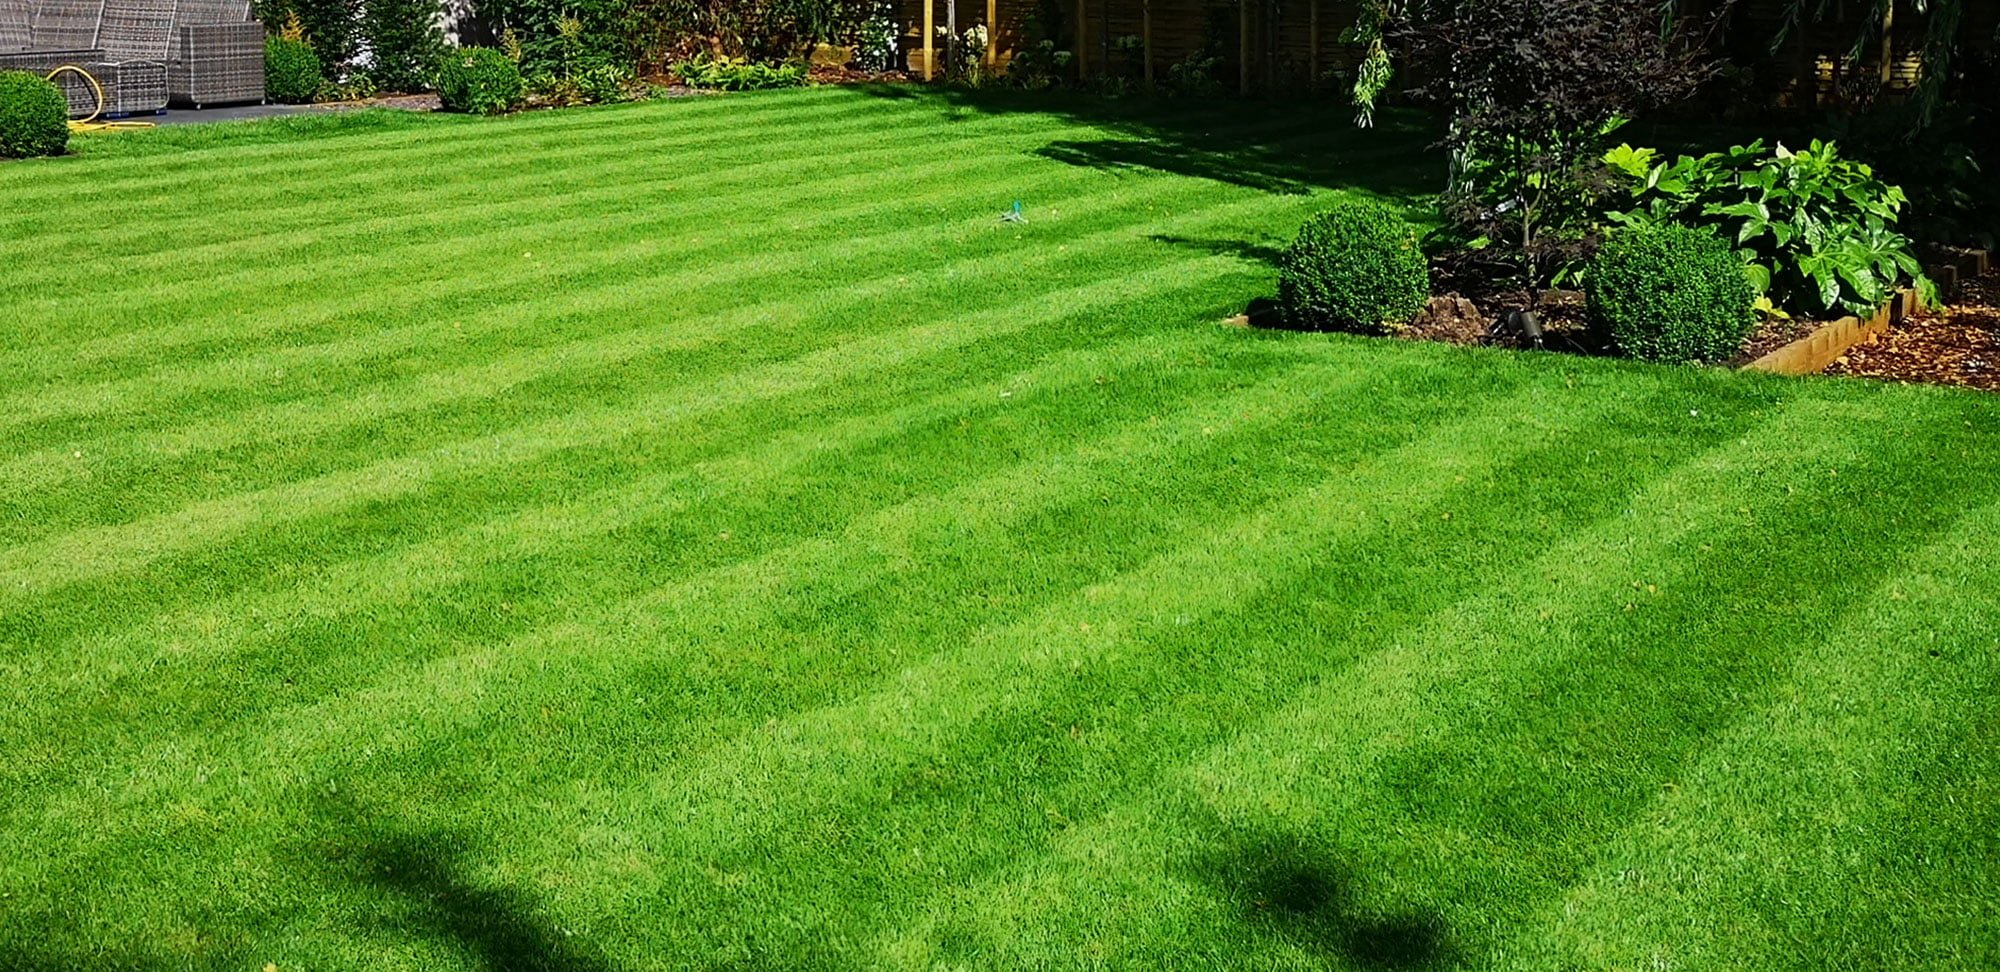 How do I keep my lawn looking green and lush?